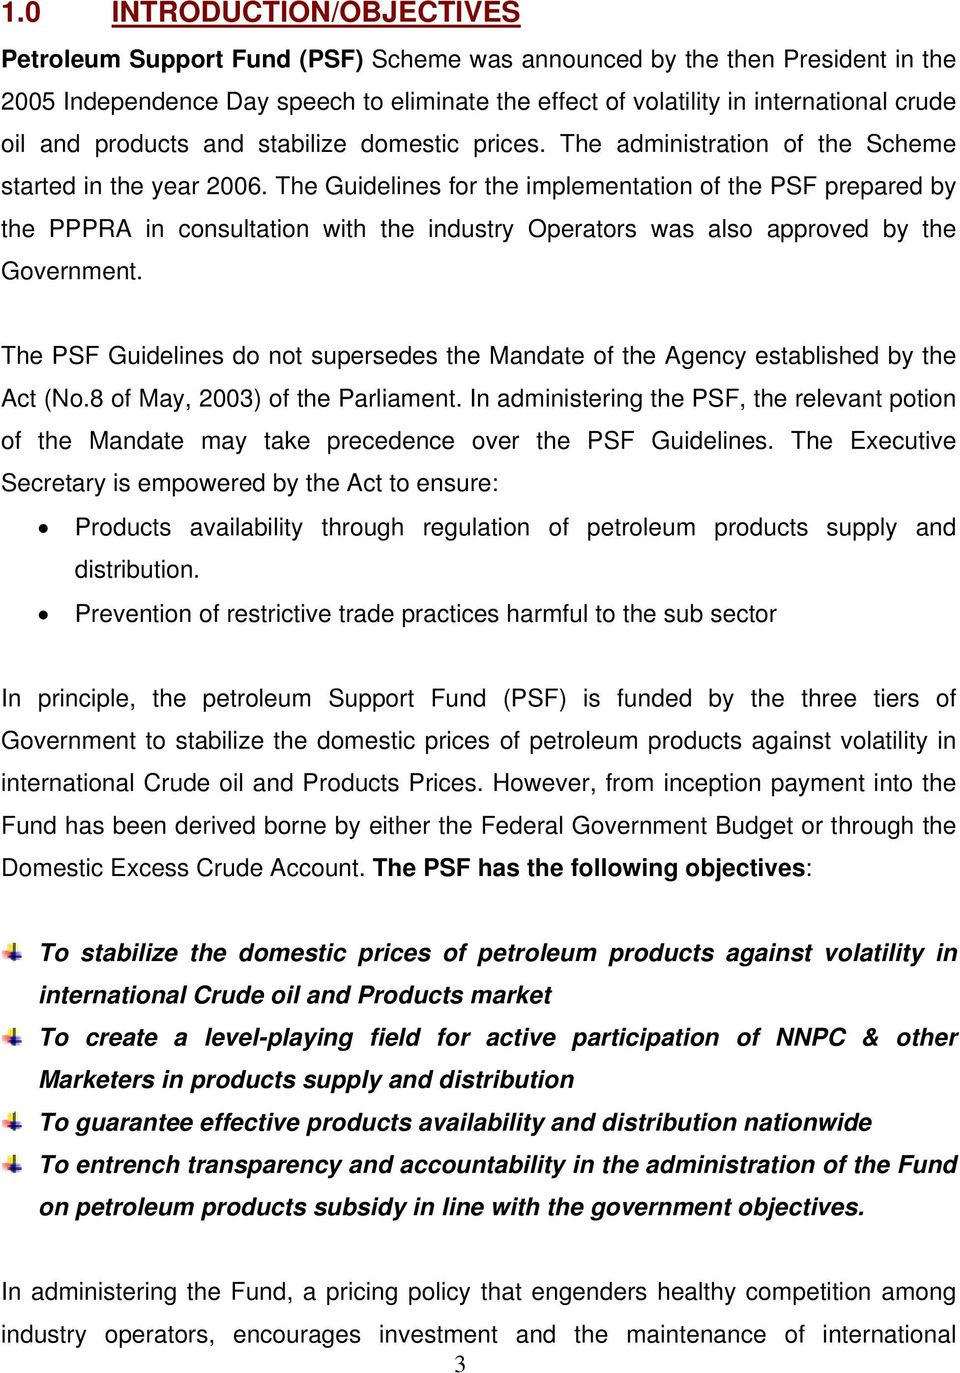 The Guidelines for the implementation of the PSF prepared by the PPPRA in consultation with the industry Operators was also approved by the Government.